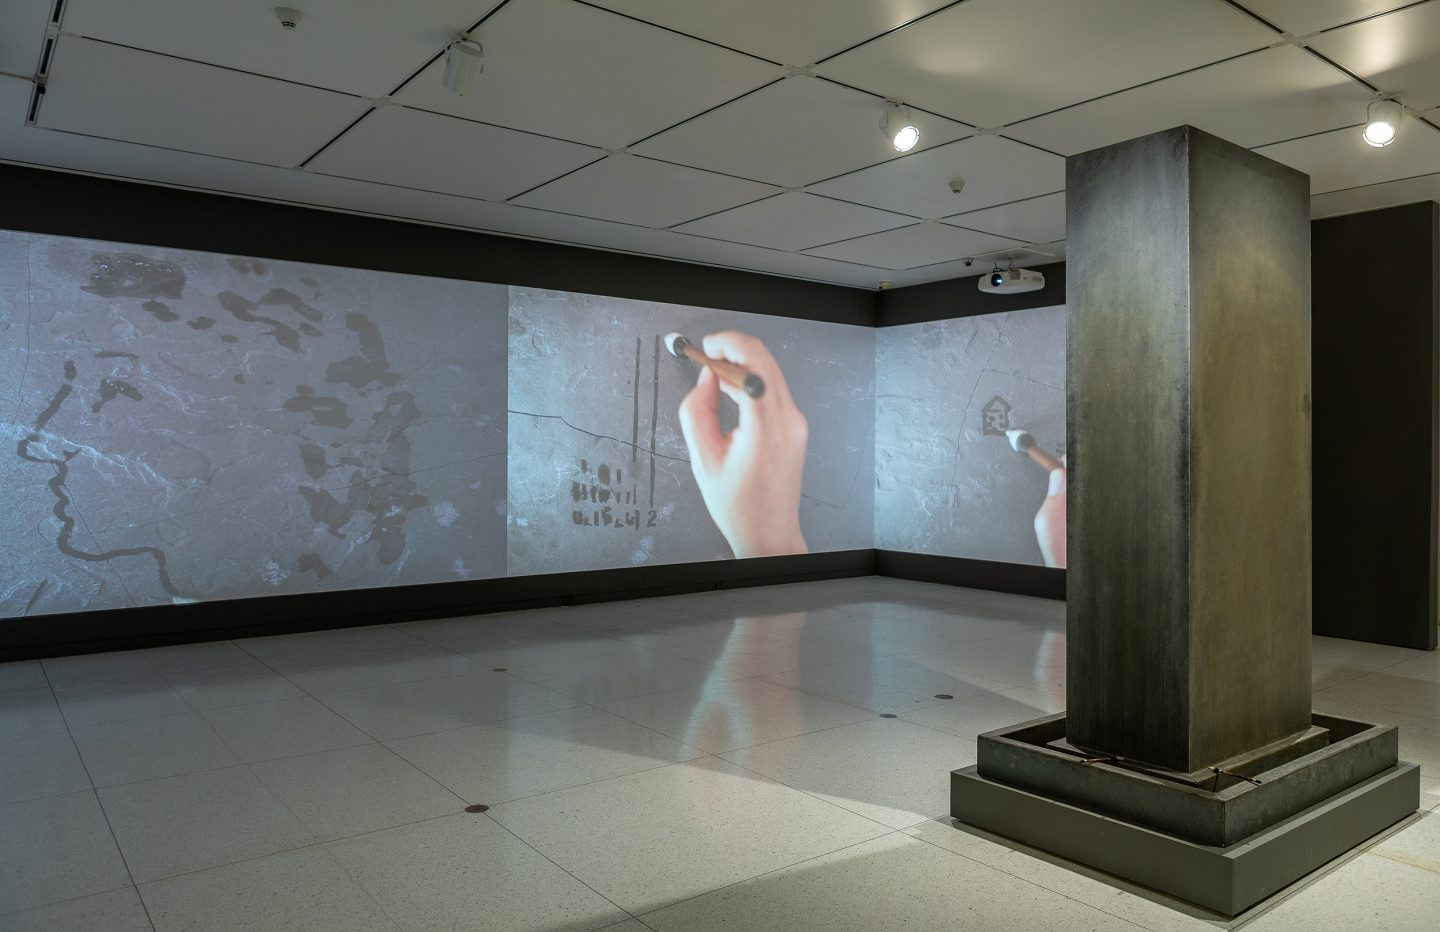 Song Dong, Water Records, 2010, and Traceless Stele, 2016. Installation view, The Allure of Matter: Material Art from China, Smart Museum of Art, 2020.